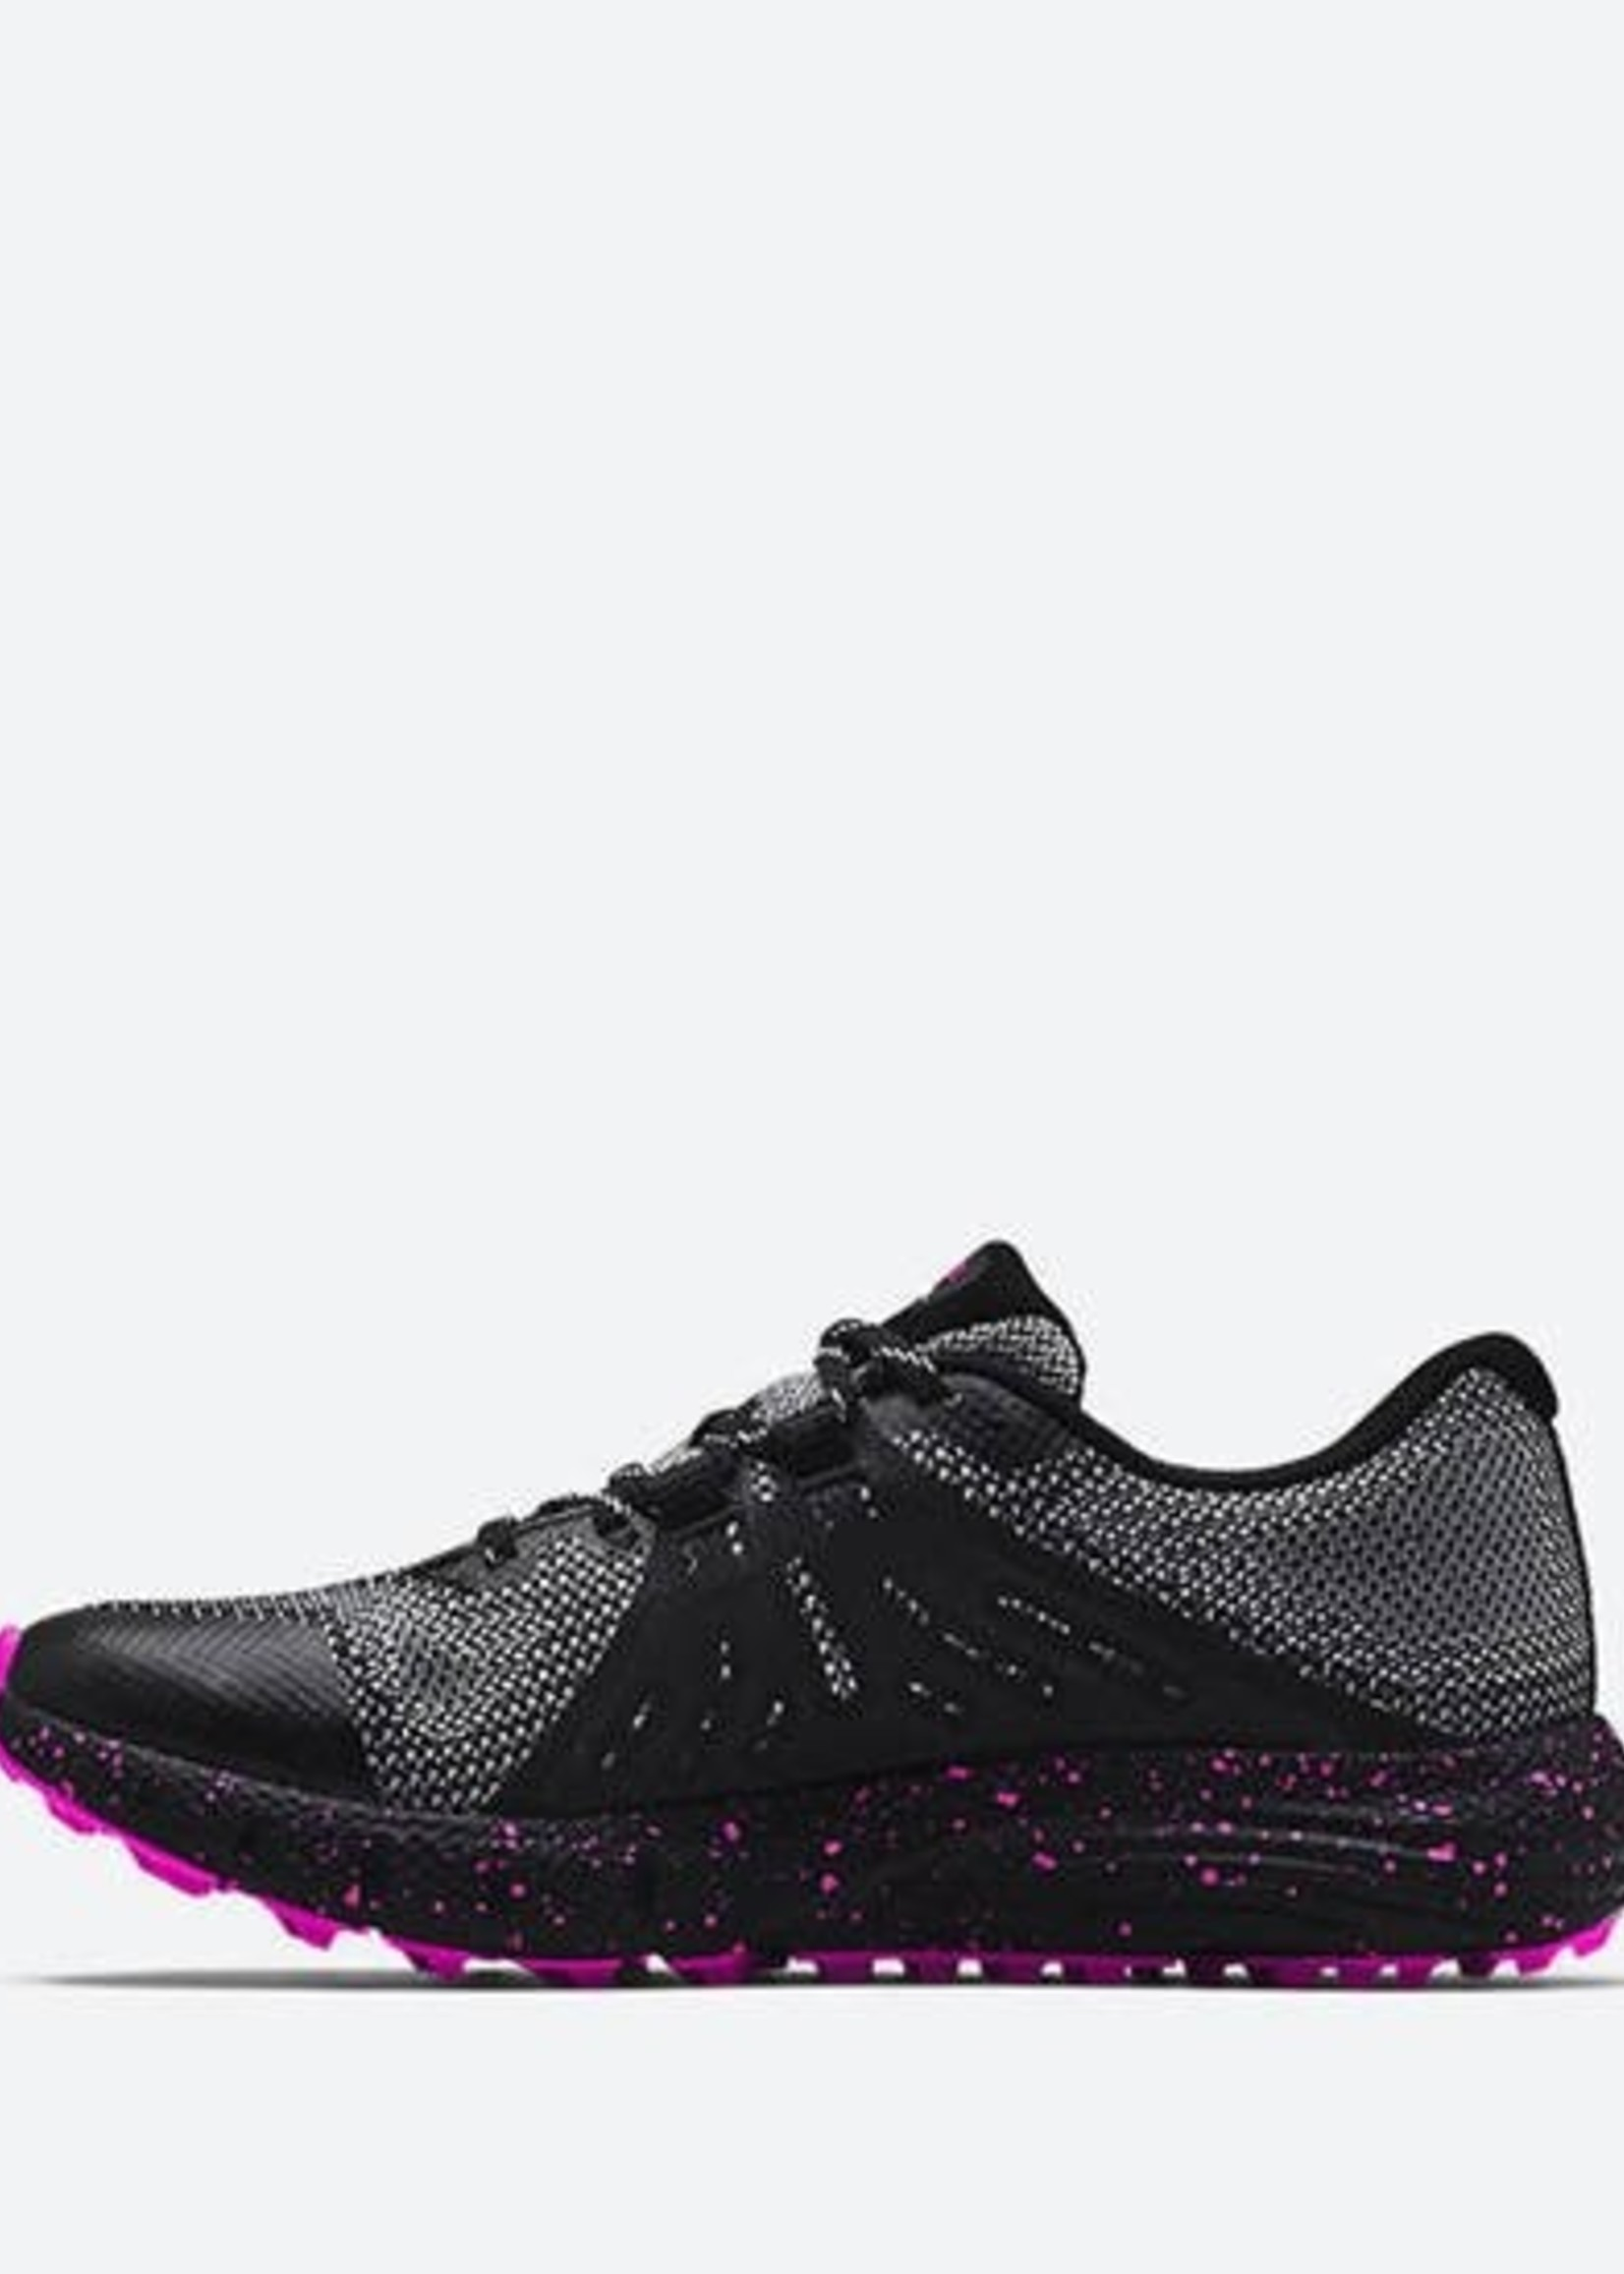 Under Armour WOMEN'S UA CHARGED BANDIT TRAIL GORE-TEX® RUNNING SHOES 3022786